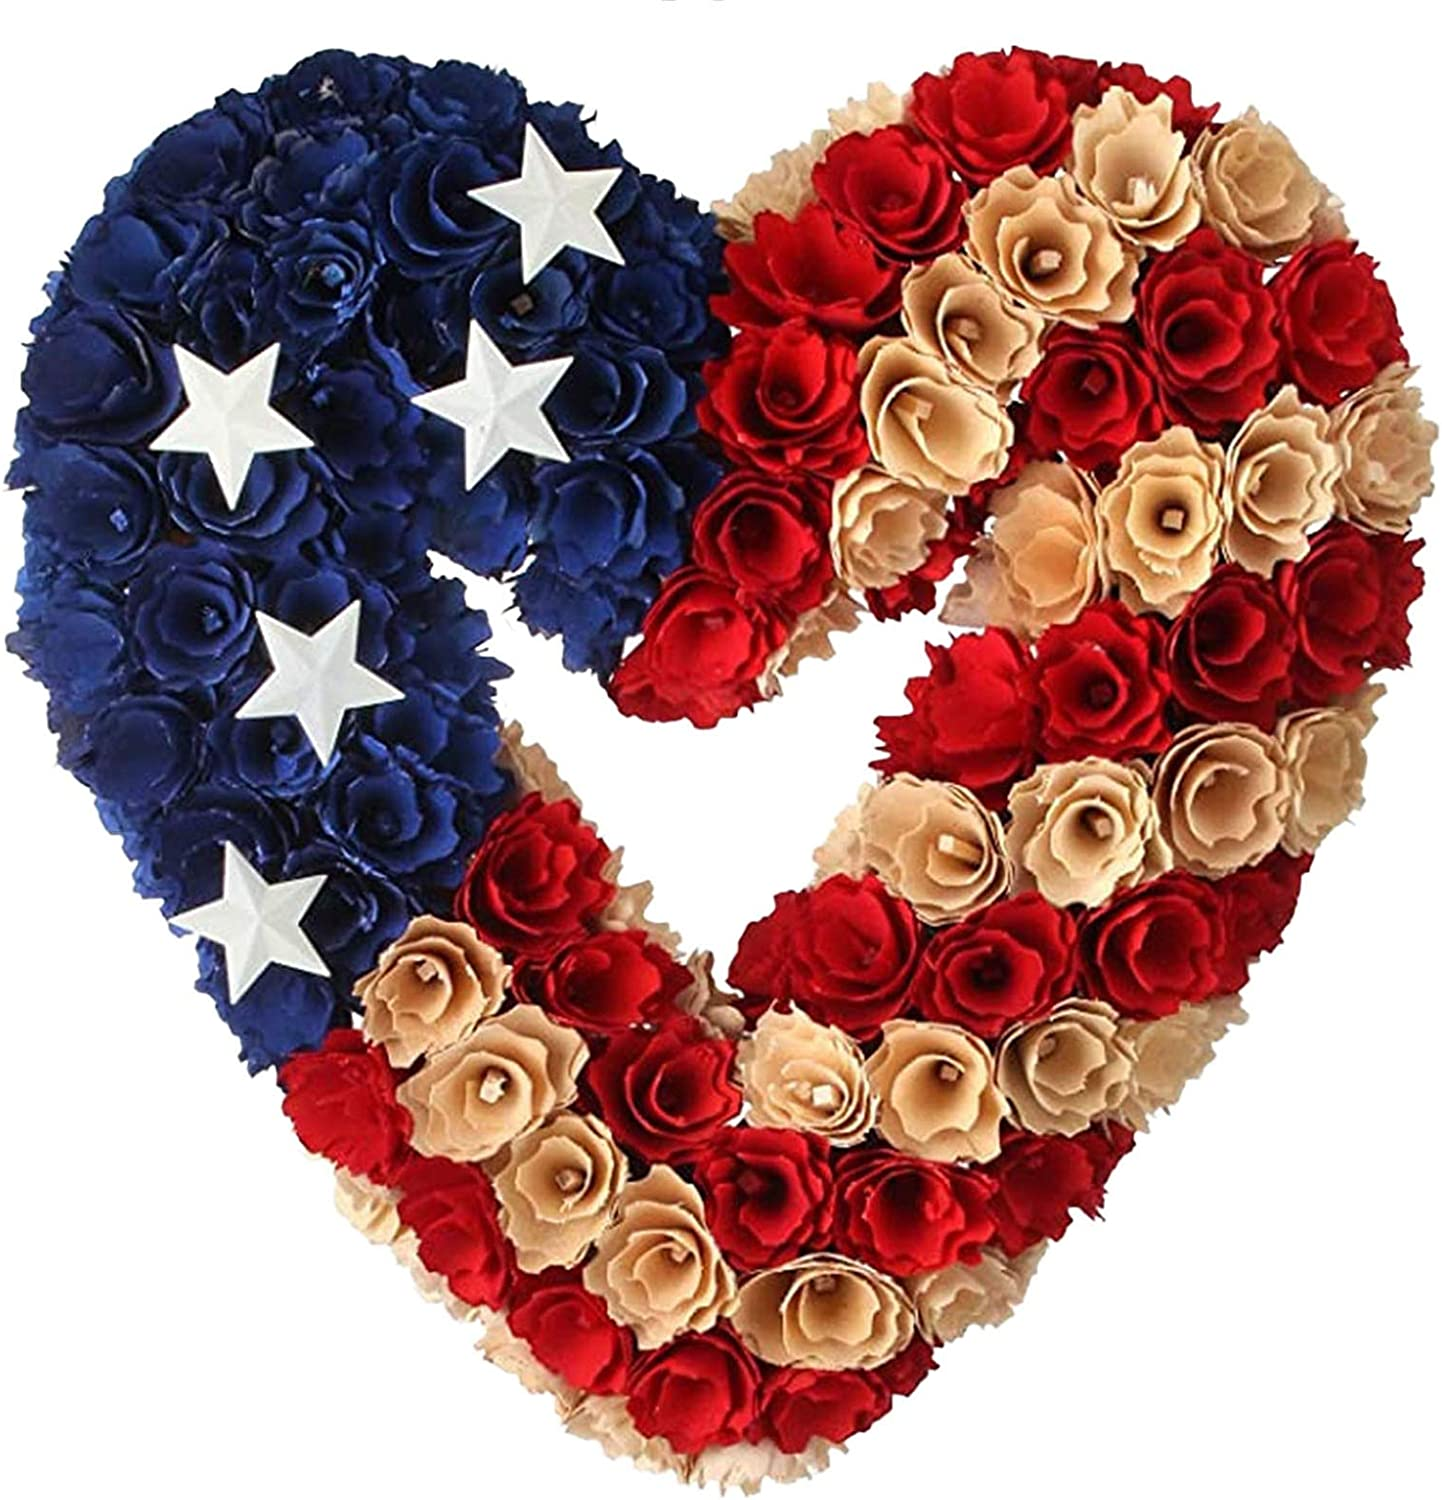 Patriotic Wreath for Front Door Outside, USA 4th of July Memorial Day Labor Day Cookout Liberty Decorative Wreath Wall Decor Multi for Indoor & Outdoor Bunting Wreaths